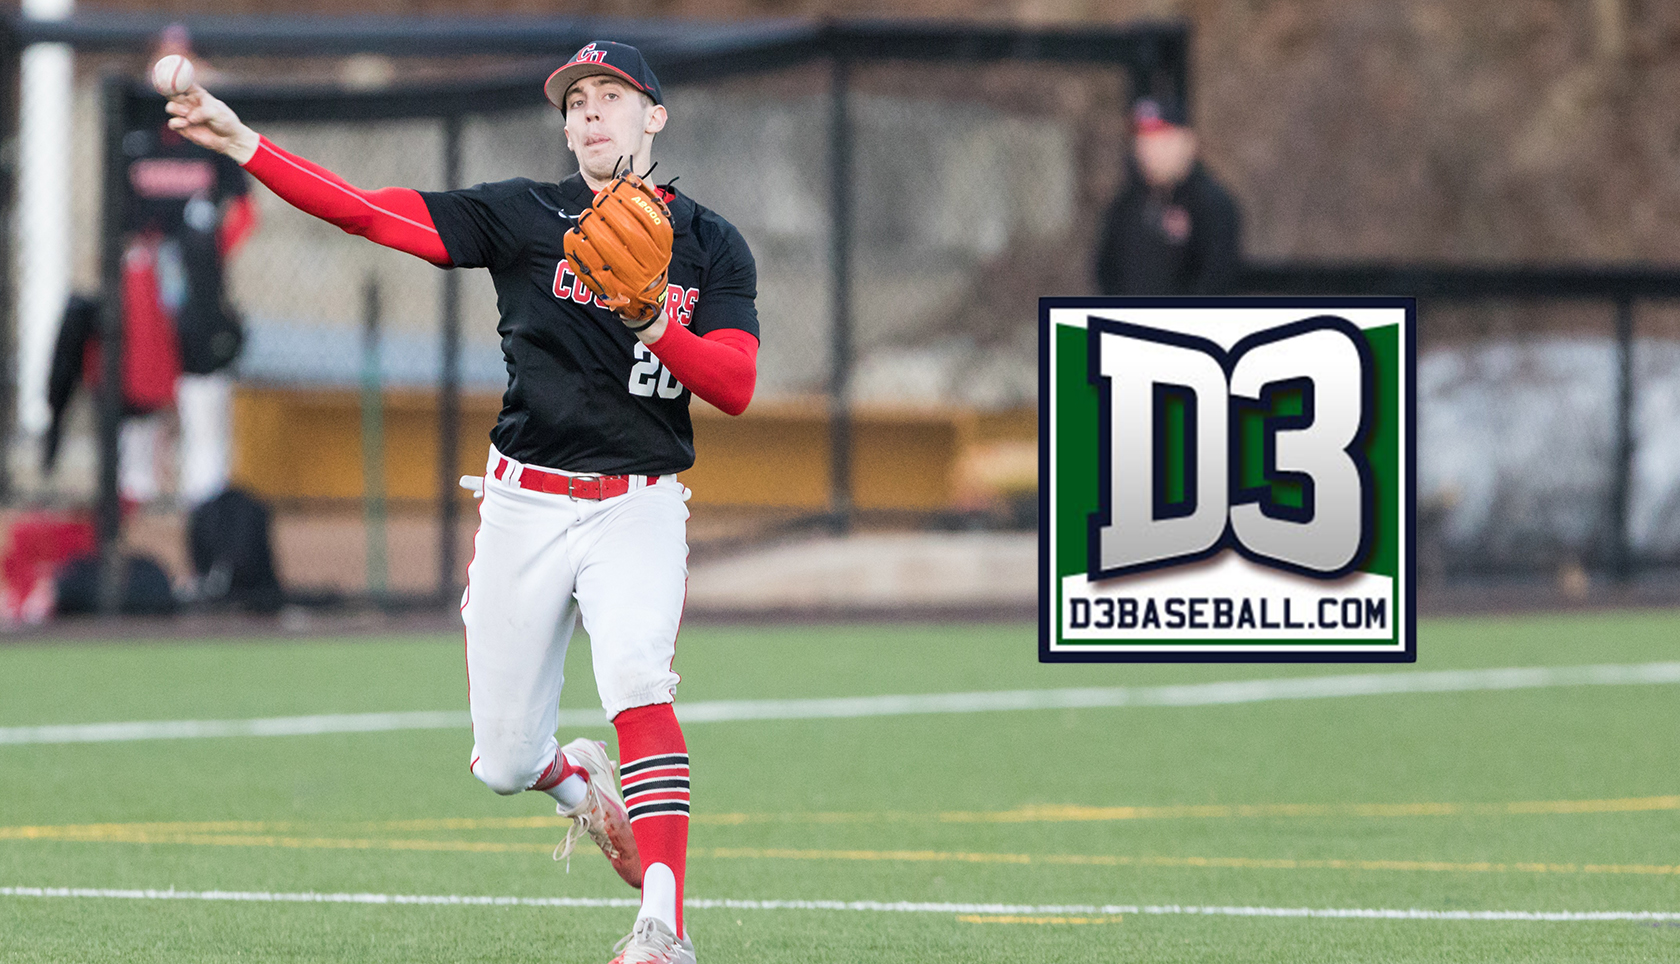 Downing Named to D3baseball.com All-New-England Region Second Team